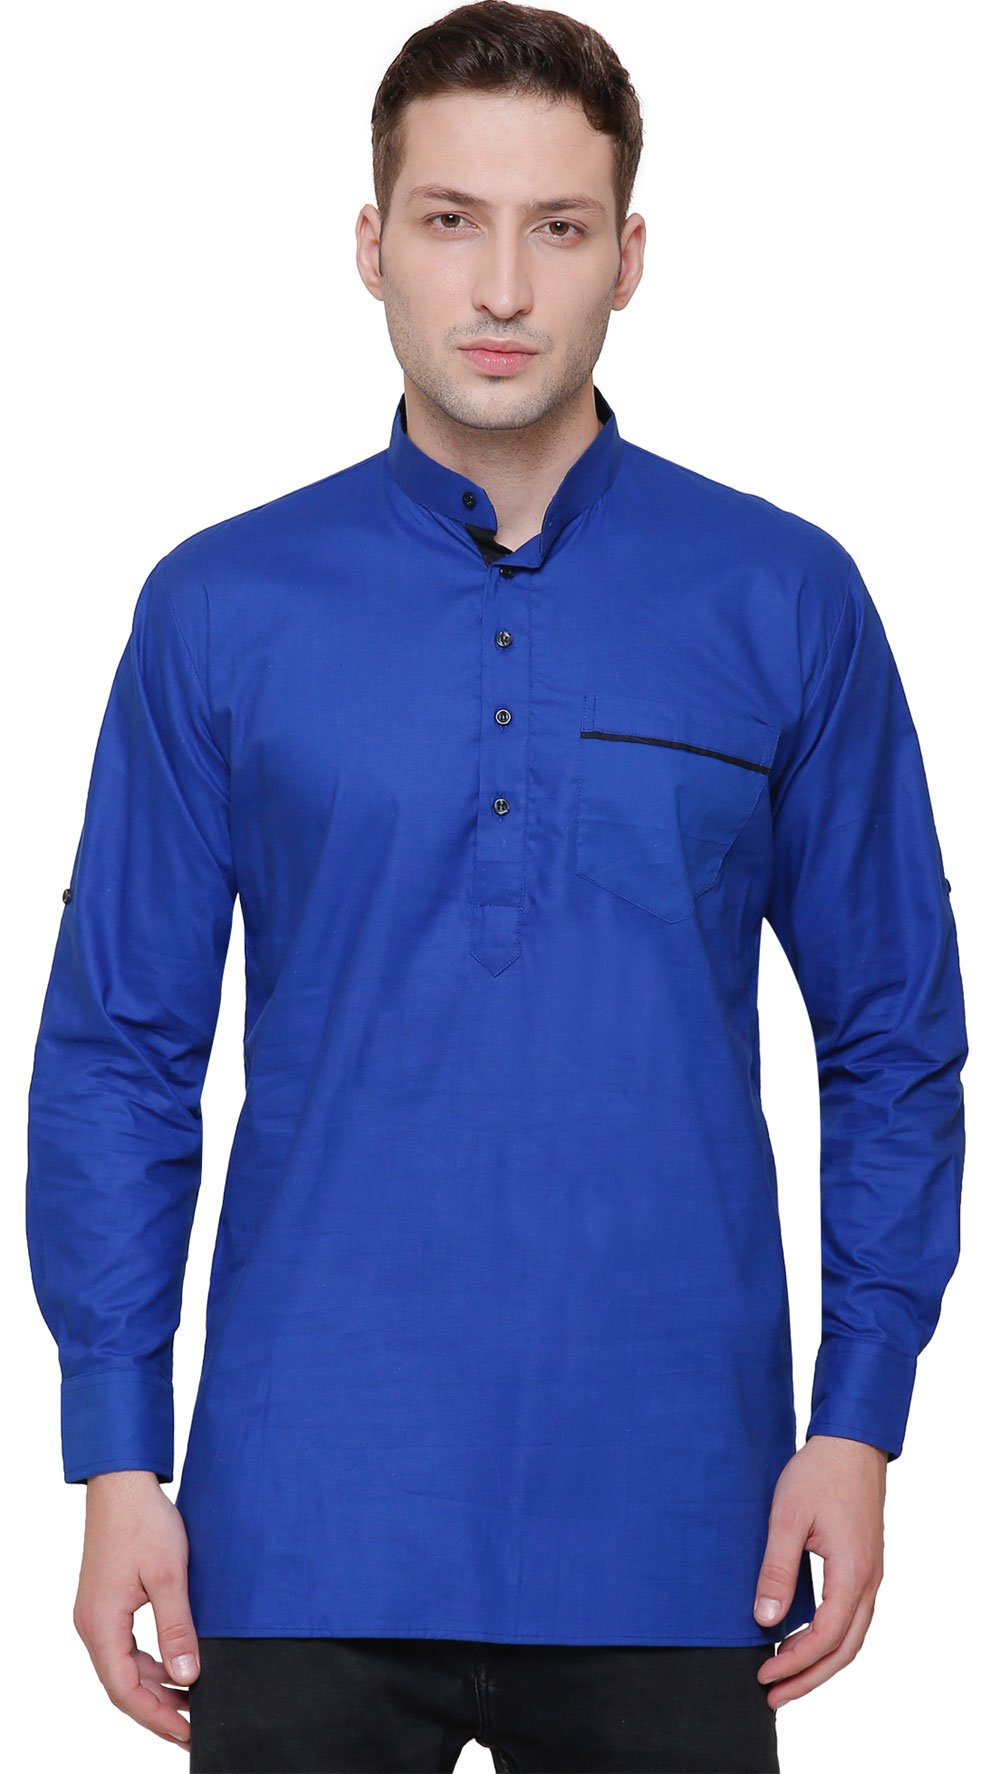 Maple Clothing Short Kurta Shirt Men's Fine Cotton Designer Indian Fashion Clothes (Blue, S) by Maple Clothing (Image #1)